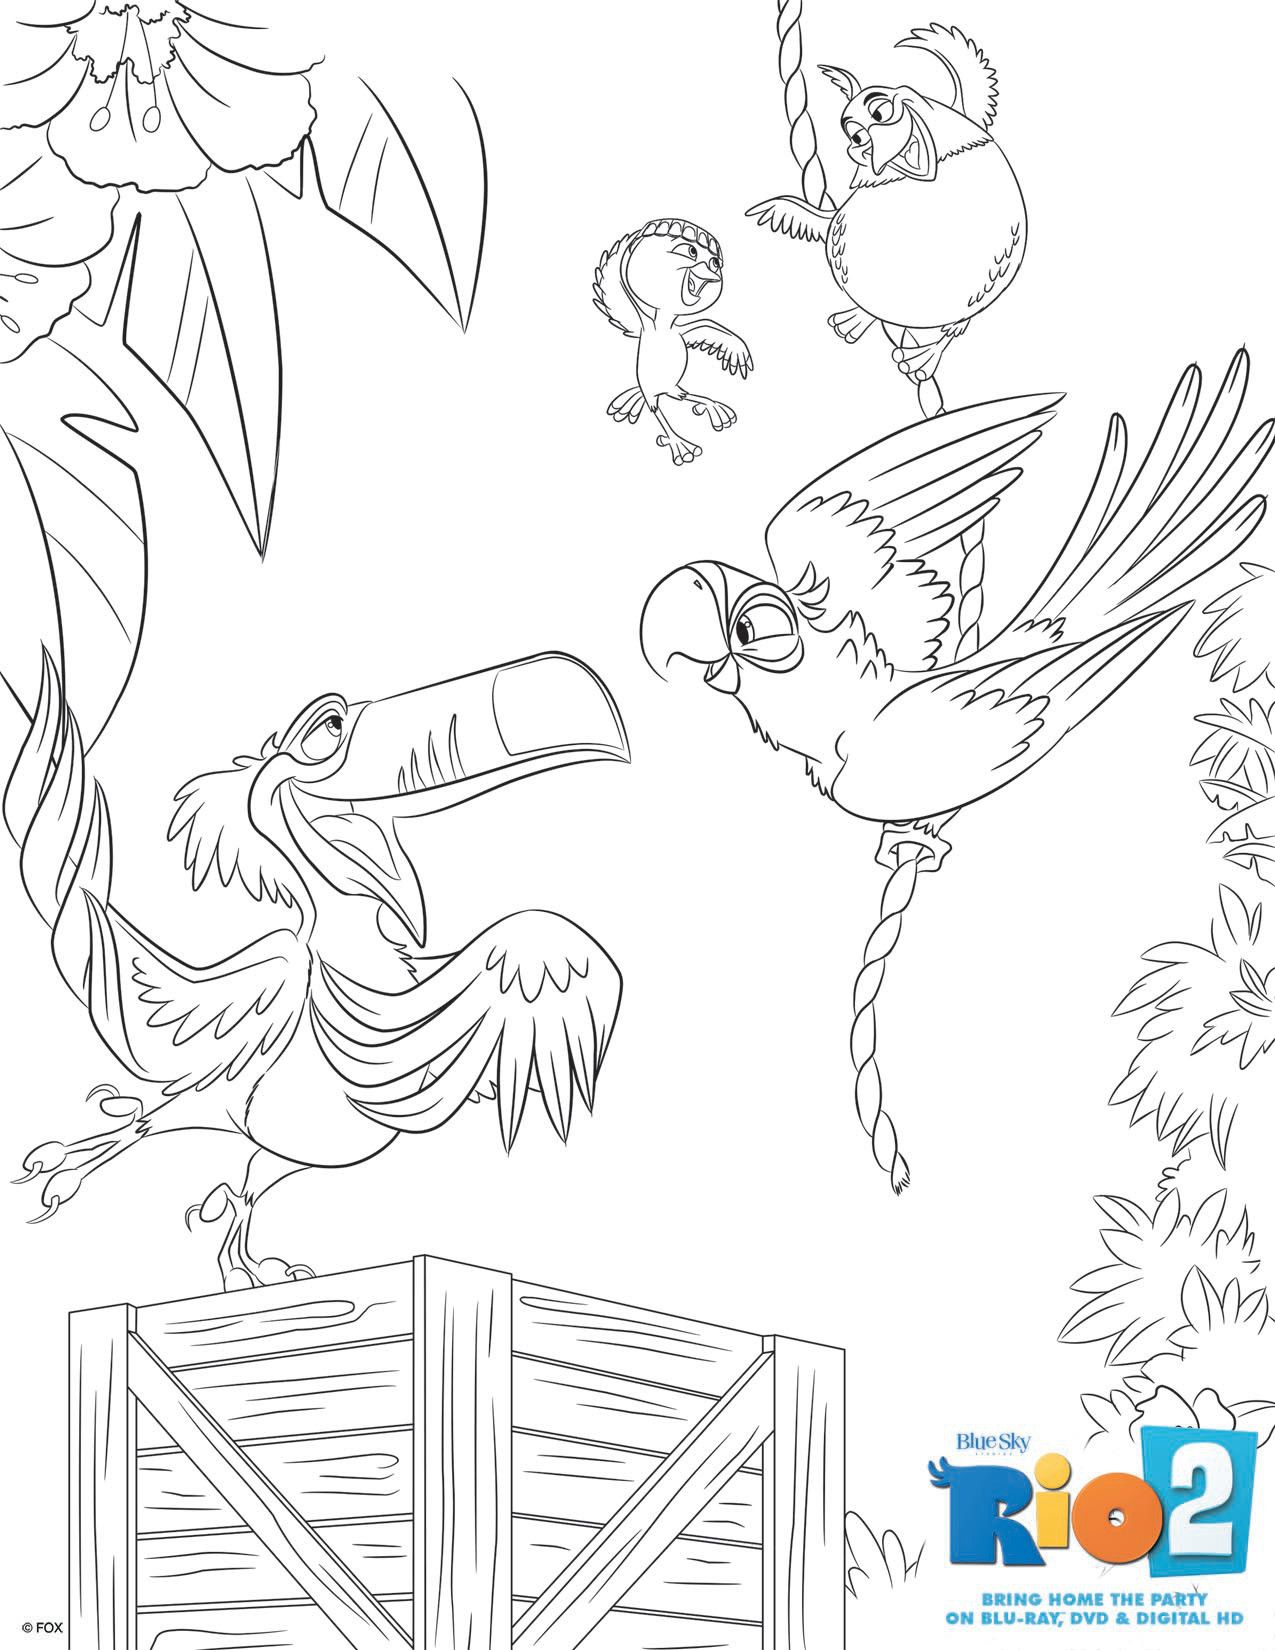 Rio 2 Coloring Pages To Download Part 2